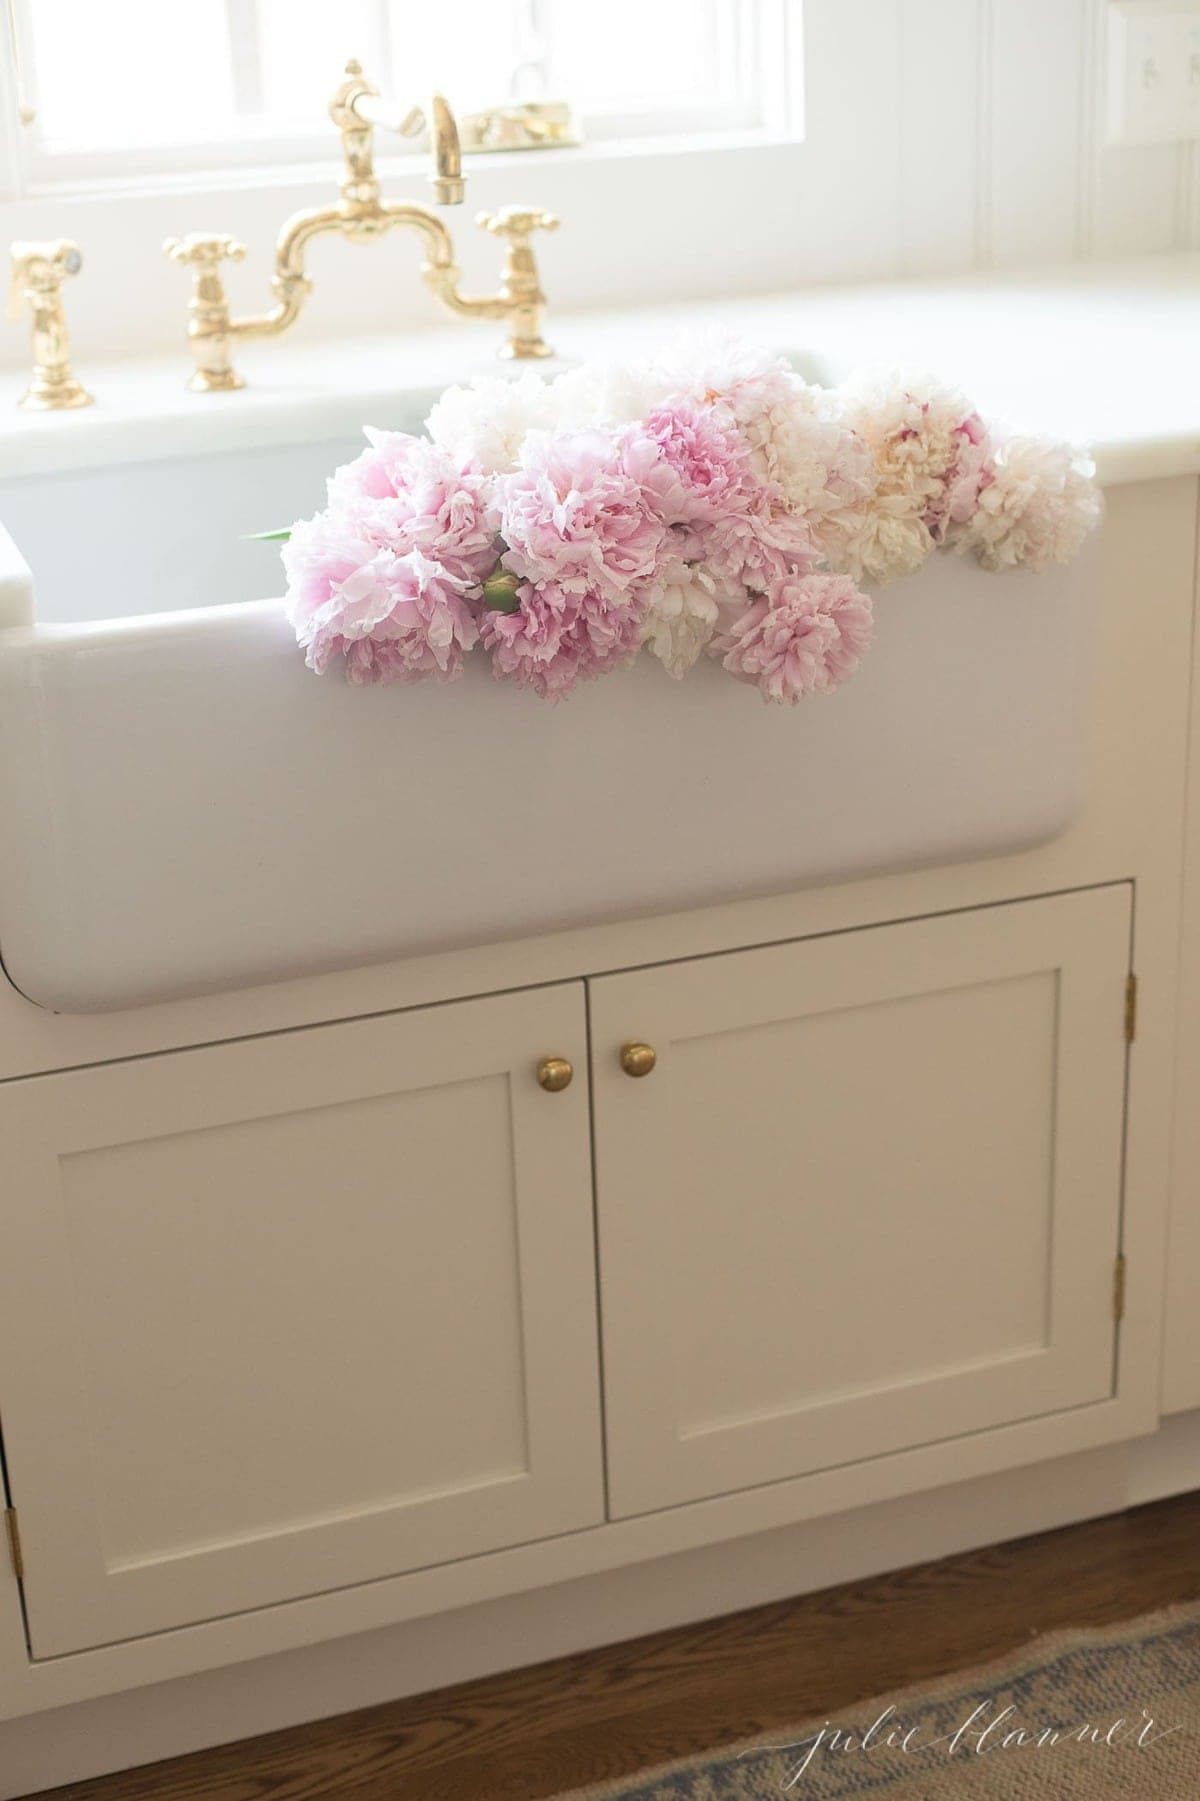 peony flowers draped over the front of a farm sink in a white kitchen.